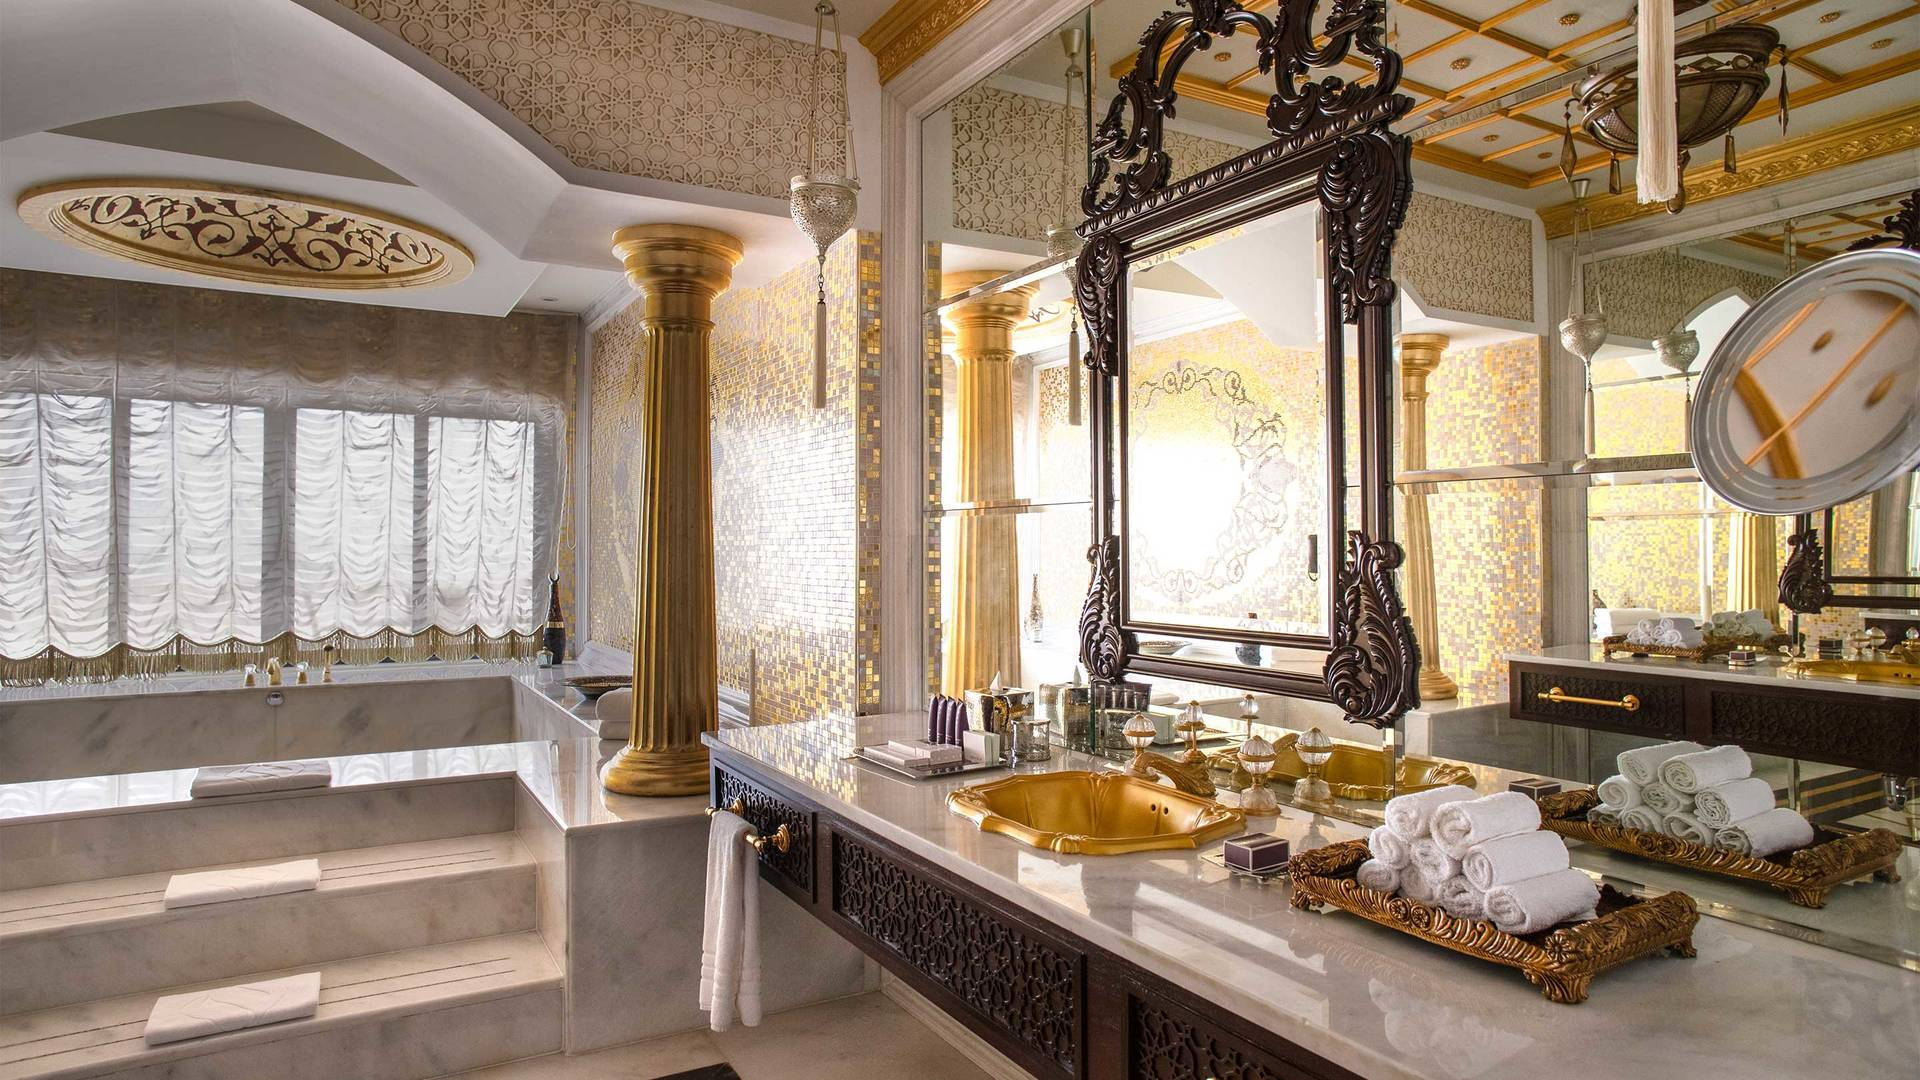 16-9_Jumeirah-Zabeel-Saray---Grand-Imperial-Suite---Bathroom-Area-Details